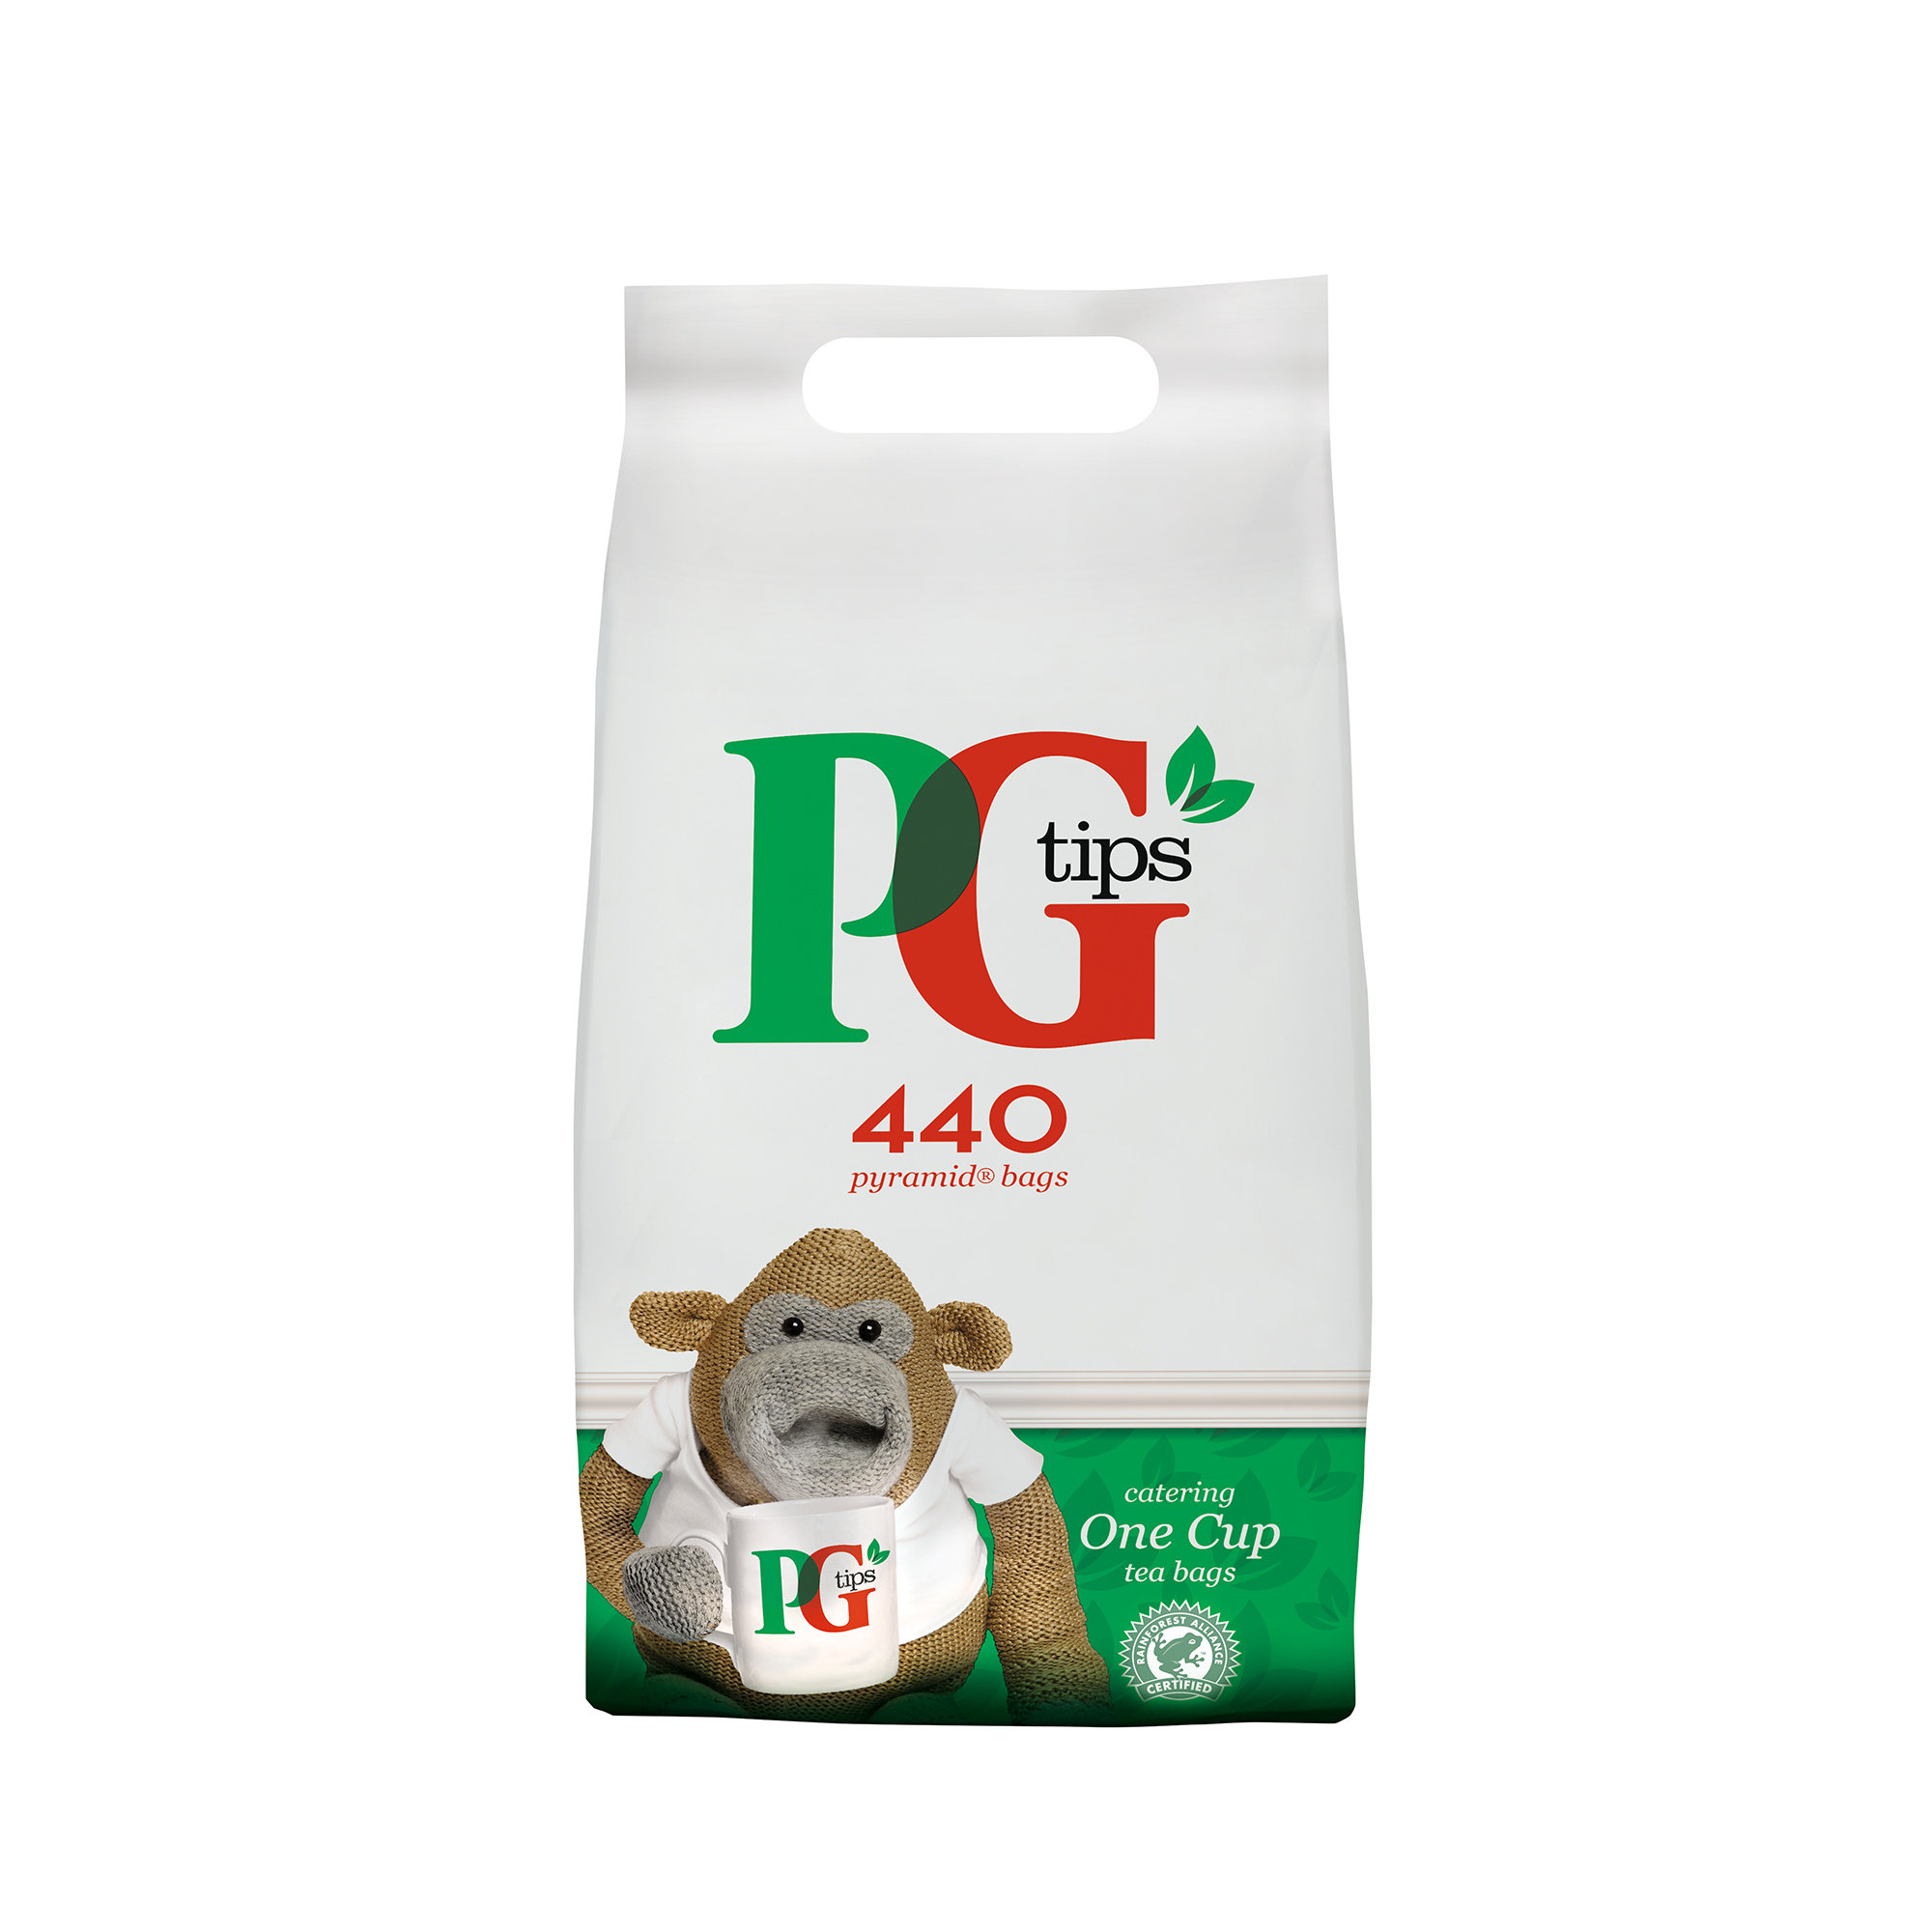 PG Tips Tea Bags Pyramid Ref 67395657 [Pack 440]